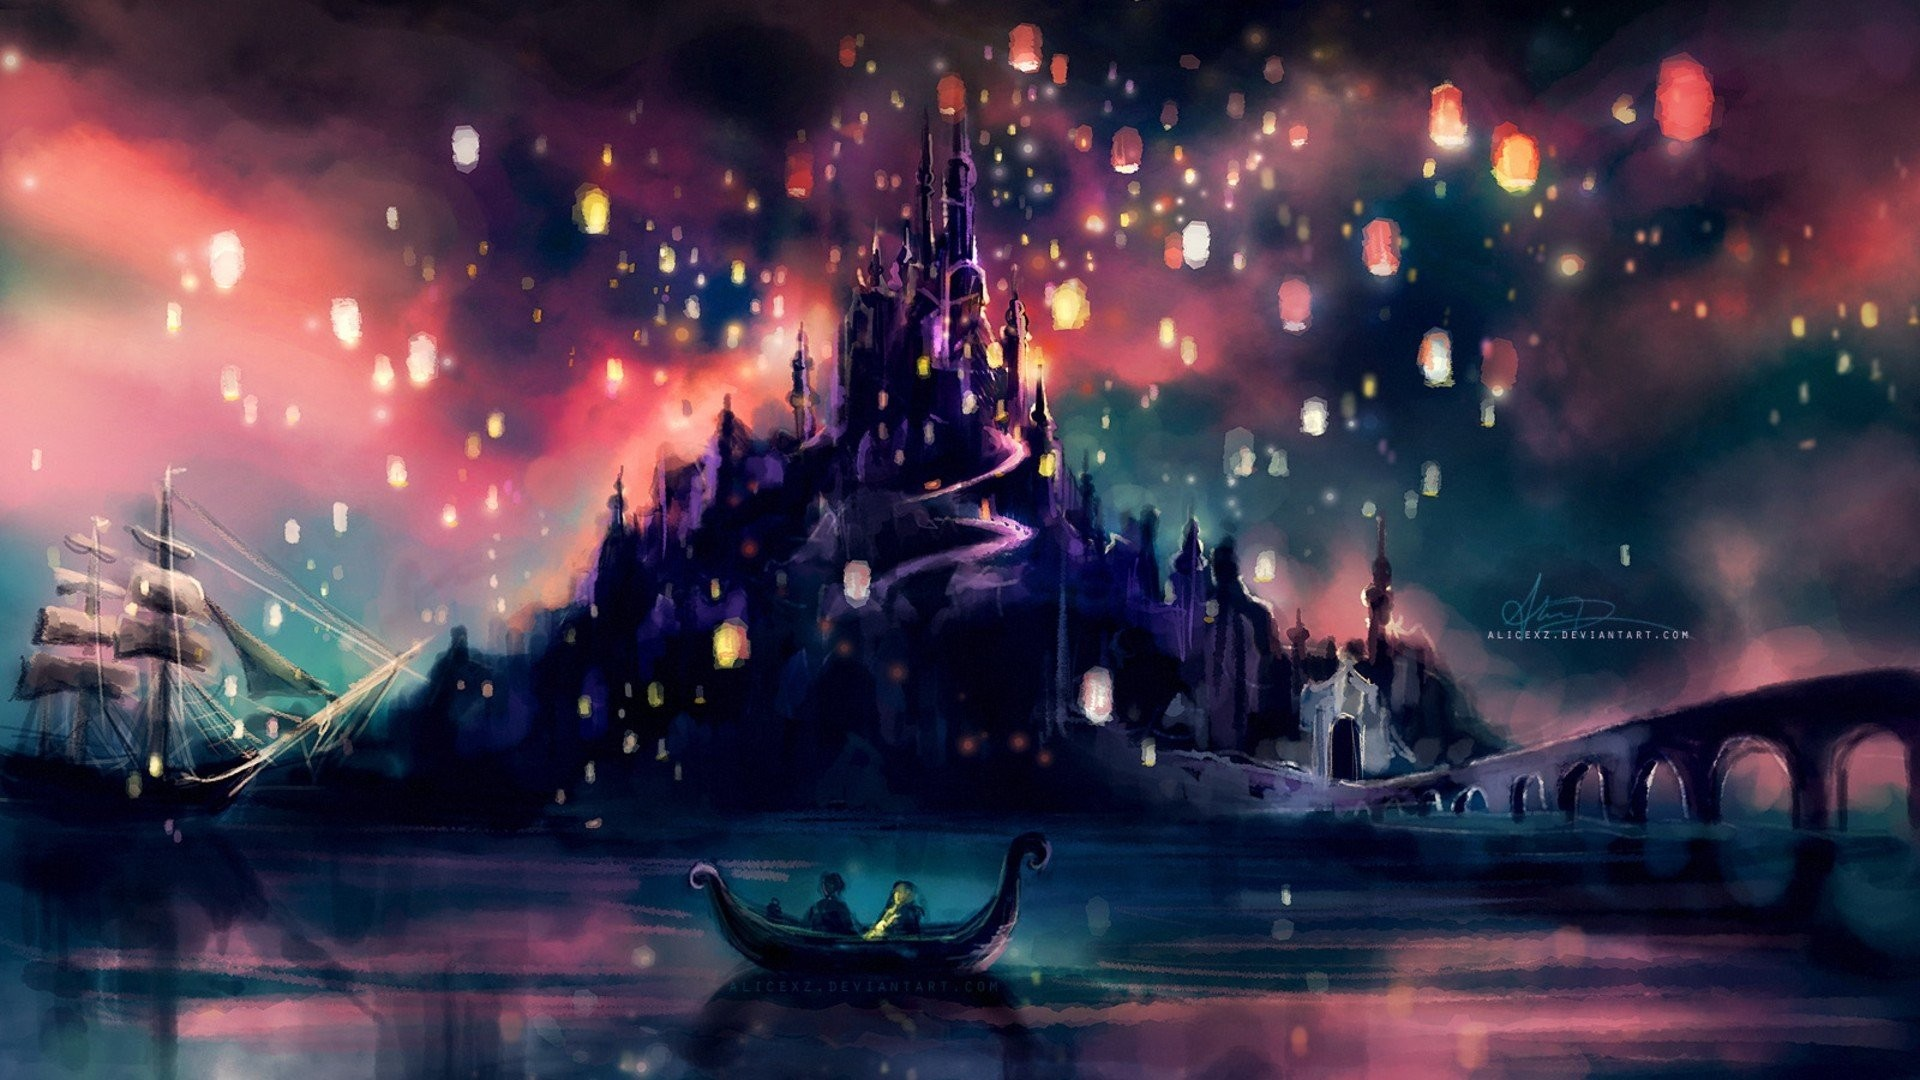 Disney Hd Wallpapers 1080p Posted By Zoey Cunningham